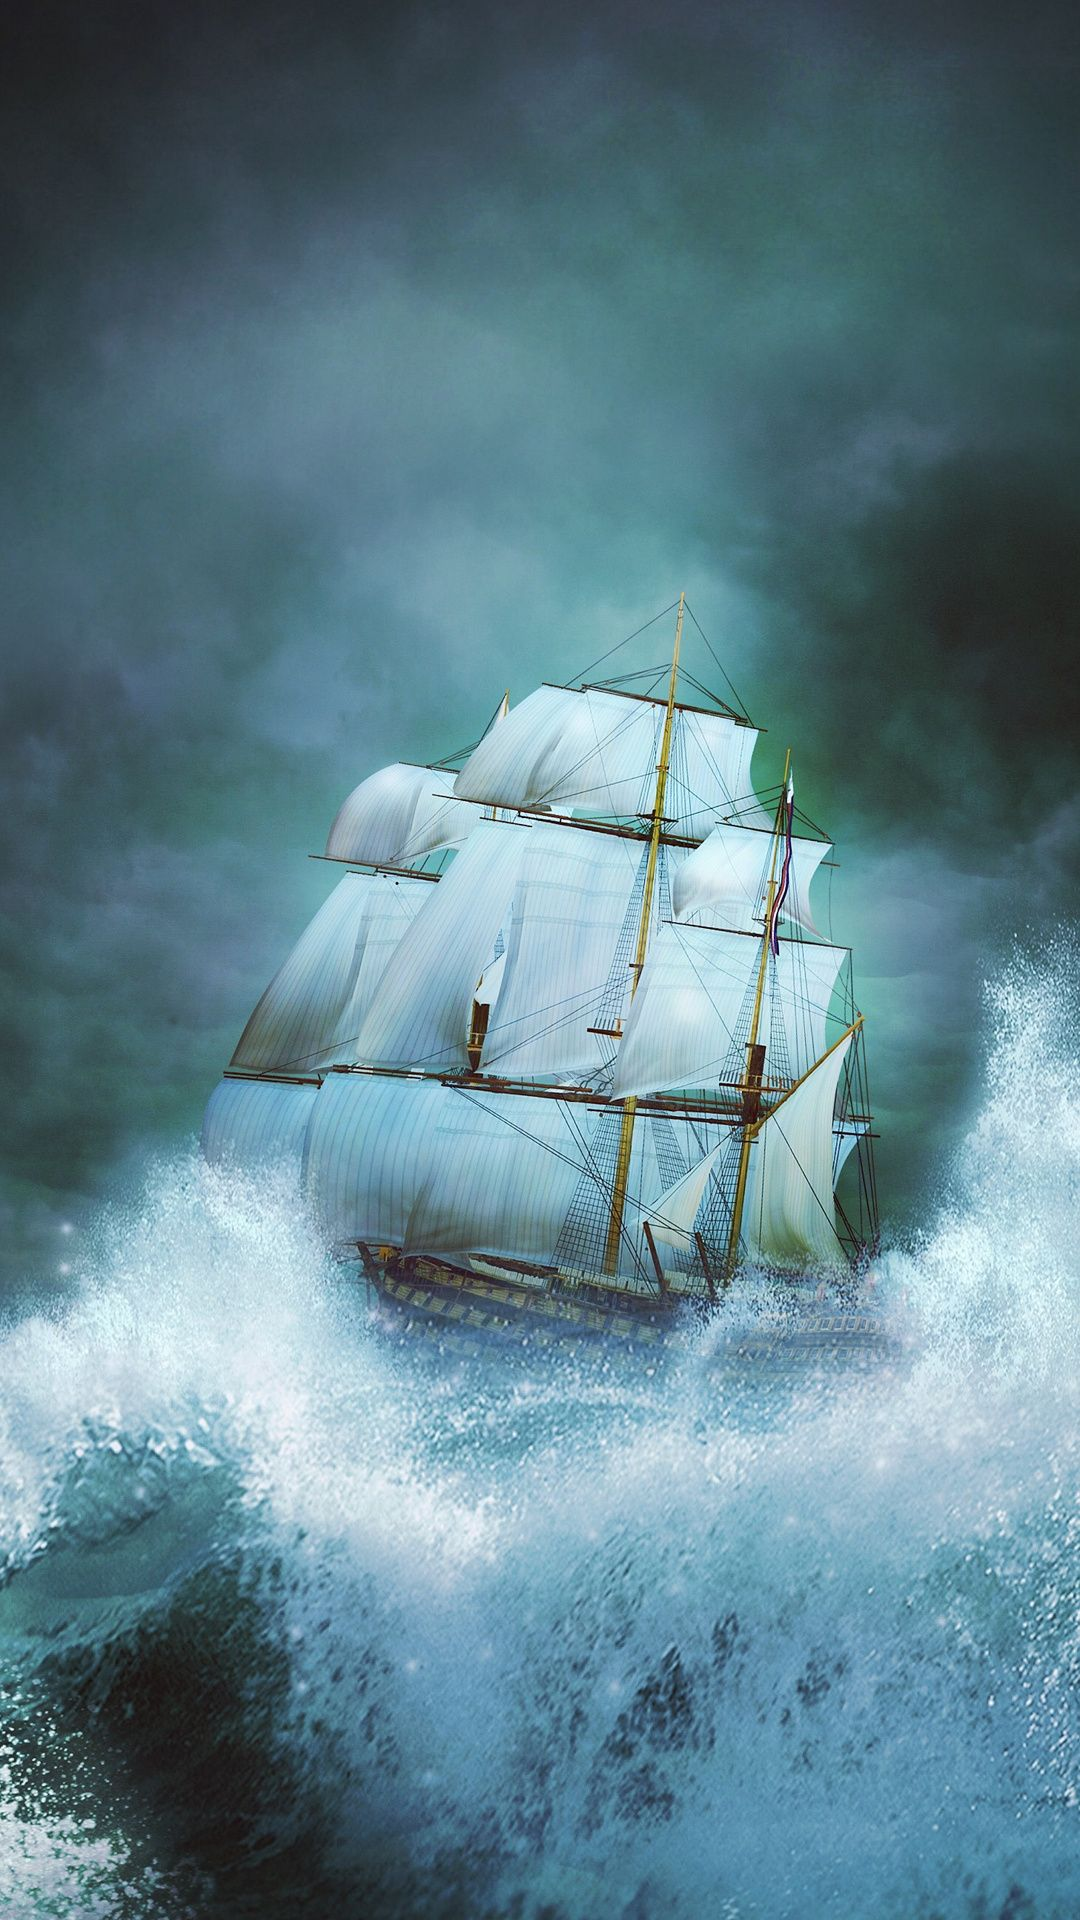 Phone Wallpaper From Zedge Tall Ship On Stormy Sea Phone